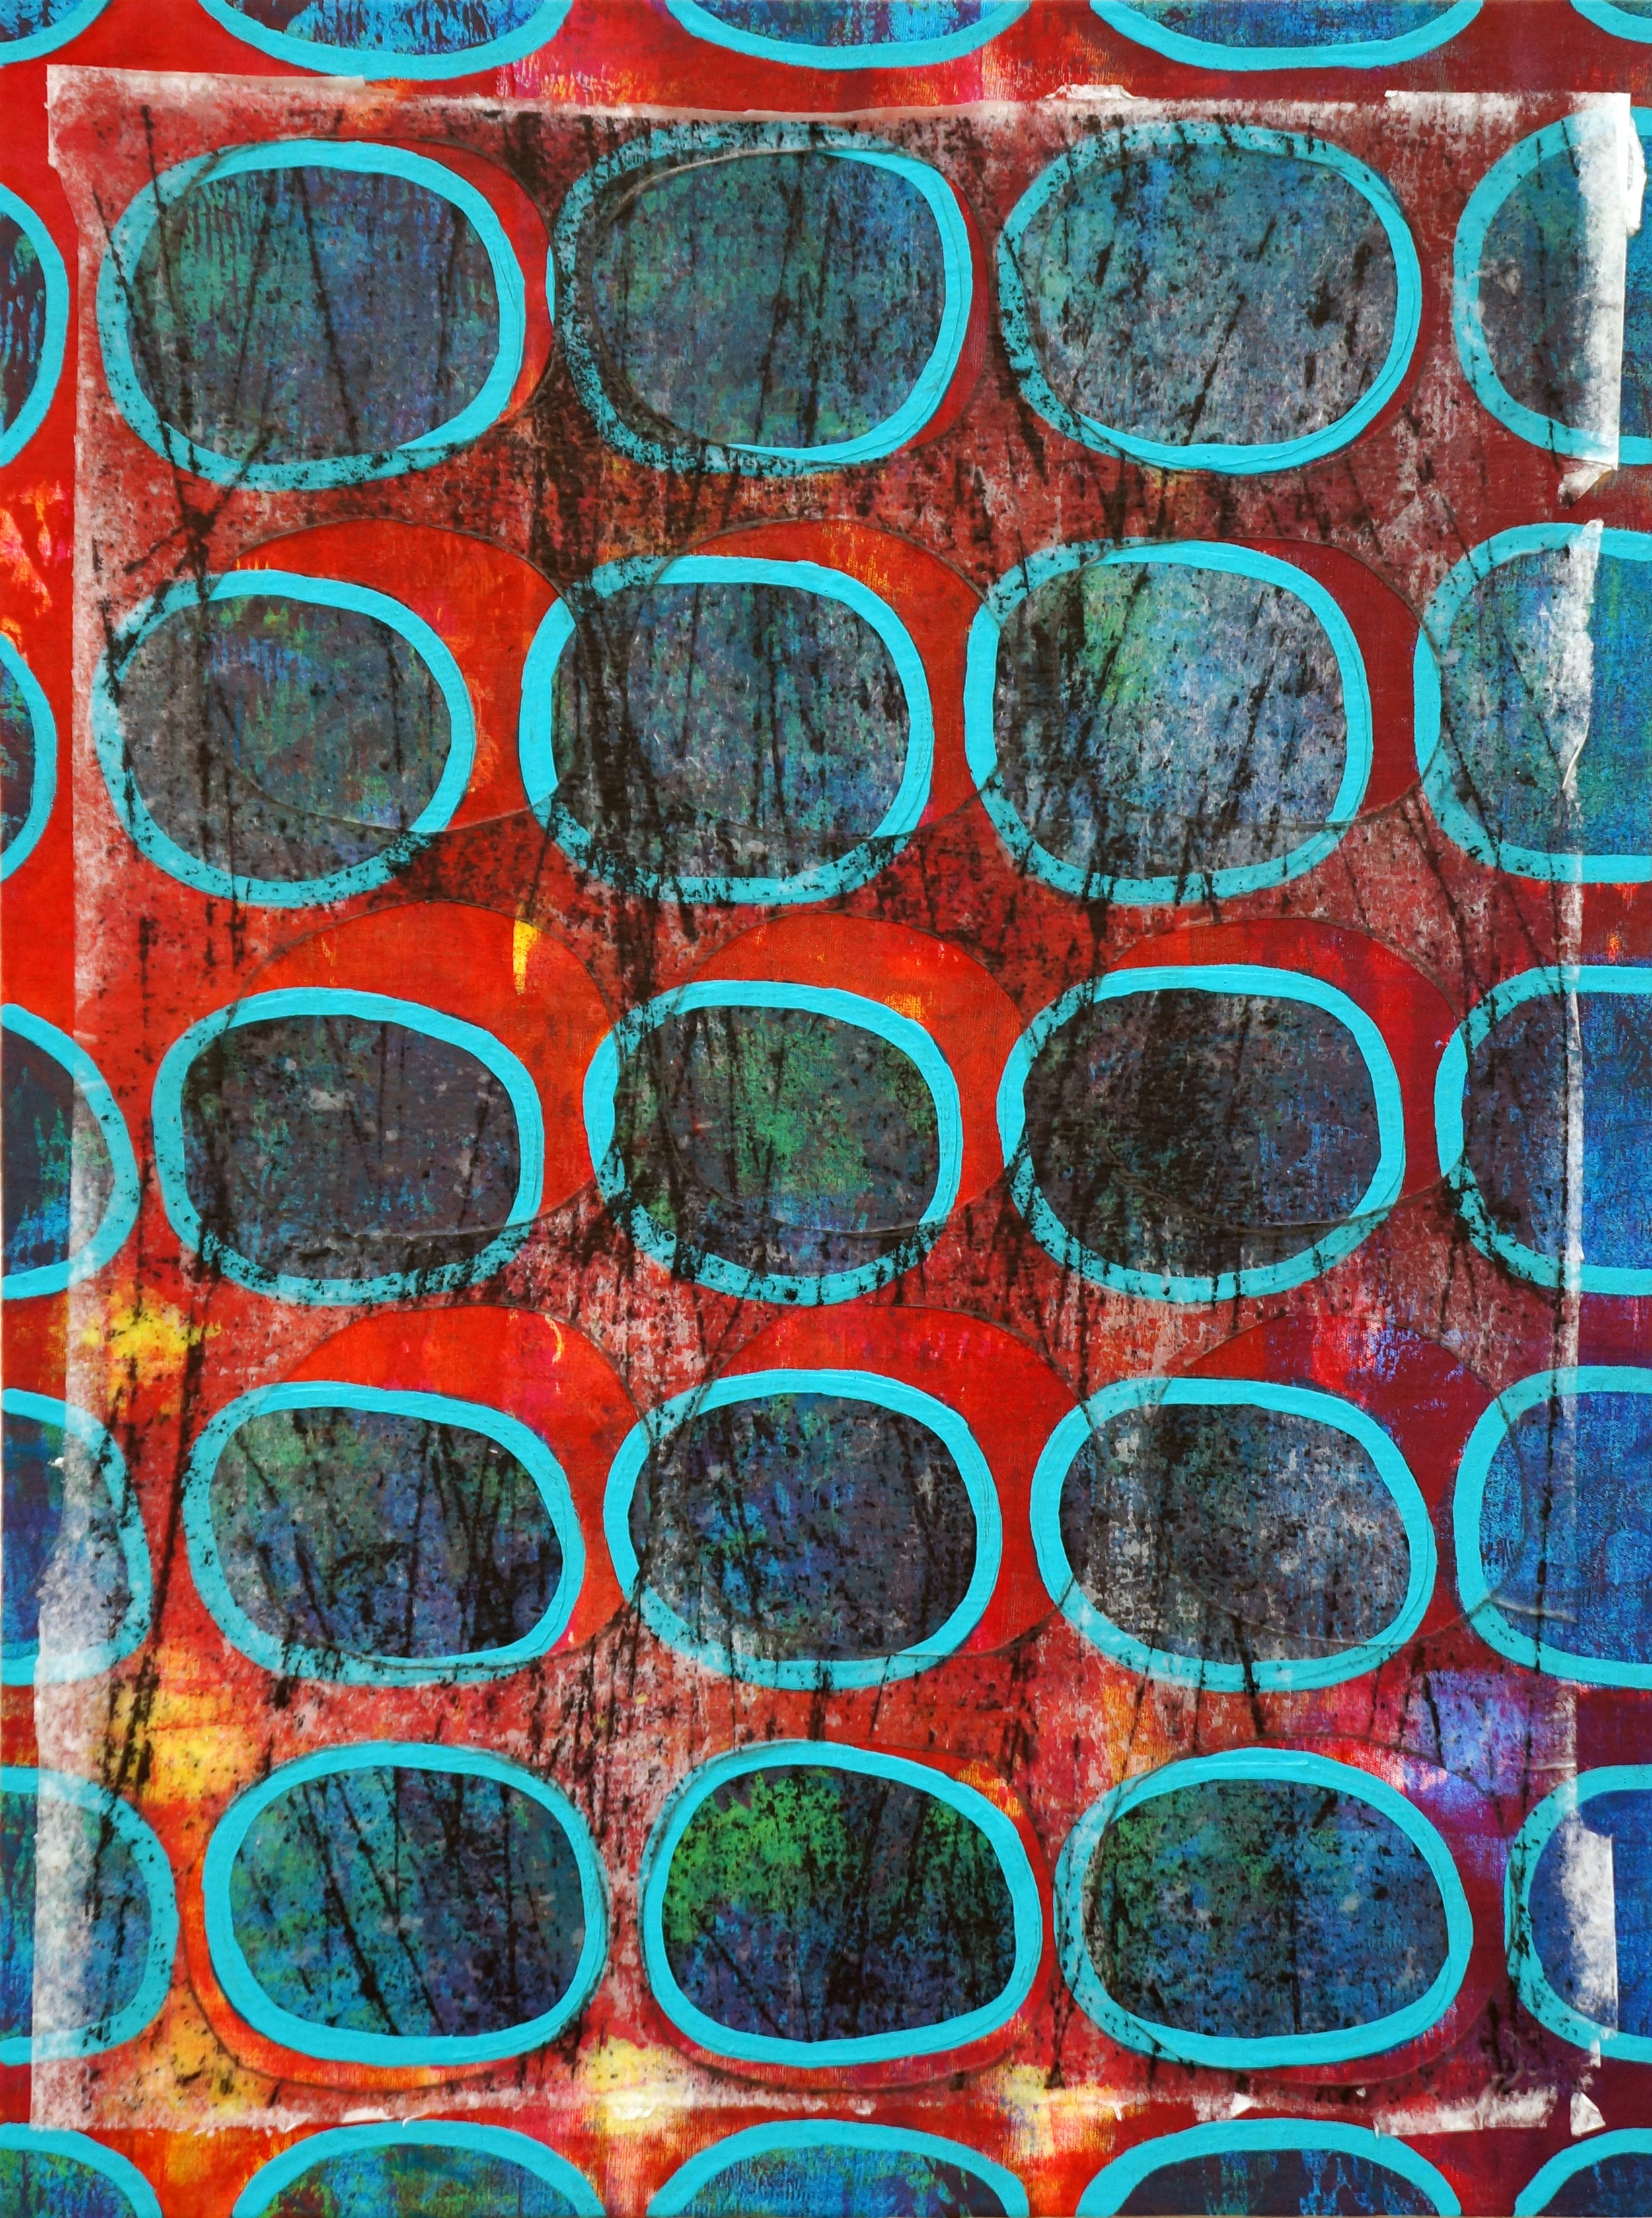 Jeanne Williamson, Bubbles and Cracks on Ice on Fences #2 , mixed media on cradled board, 14x14